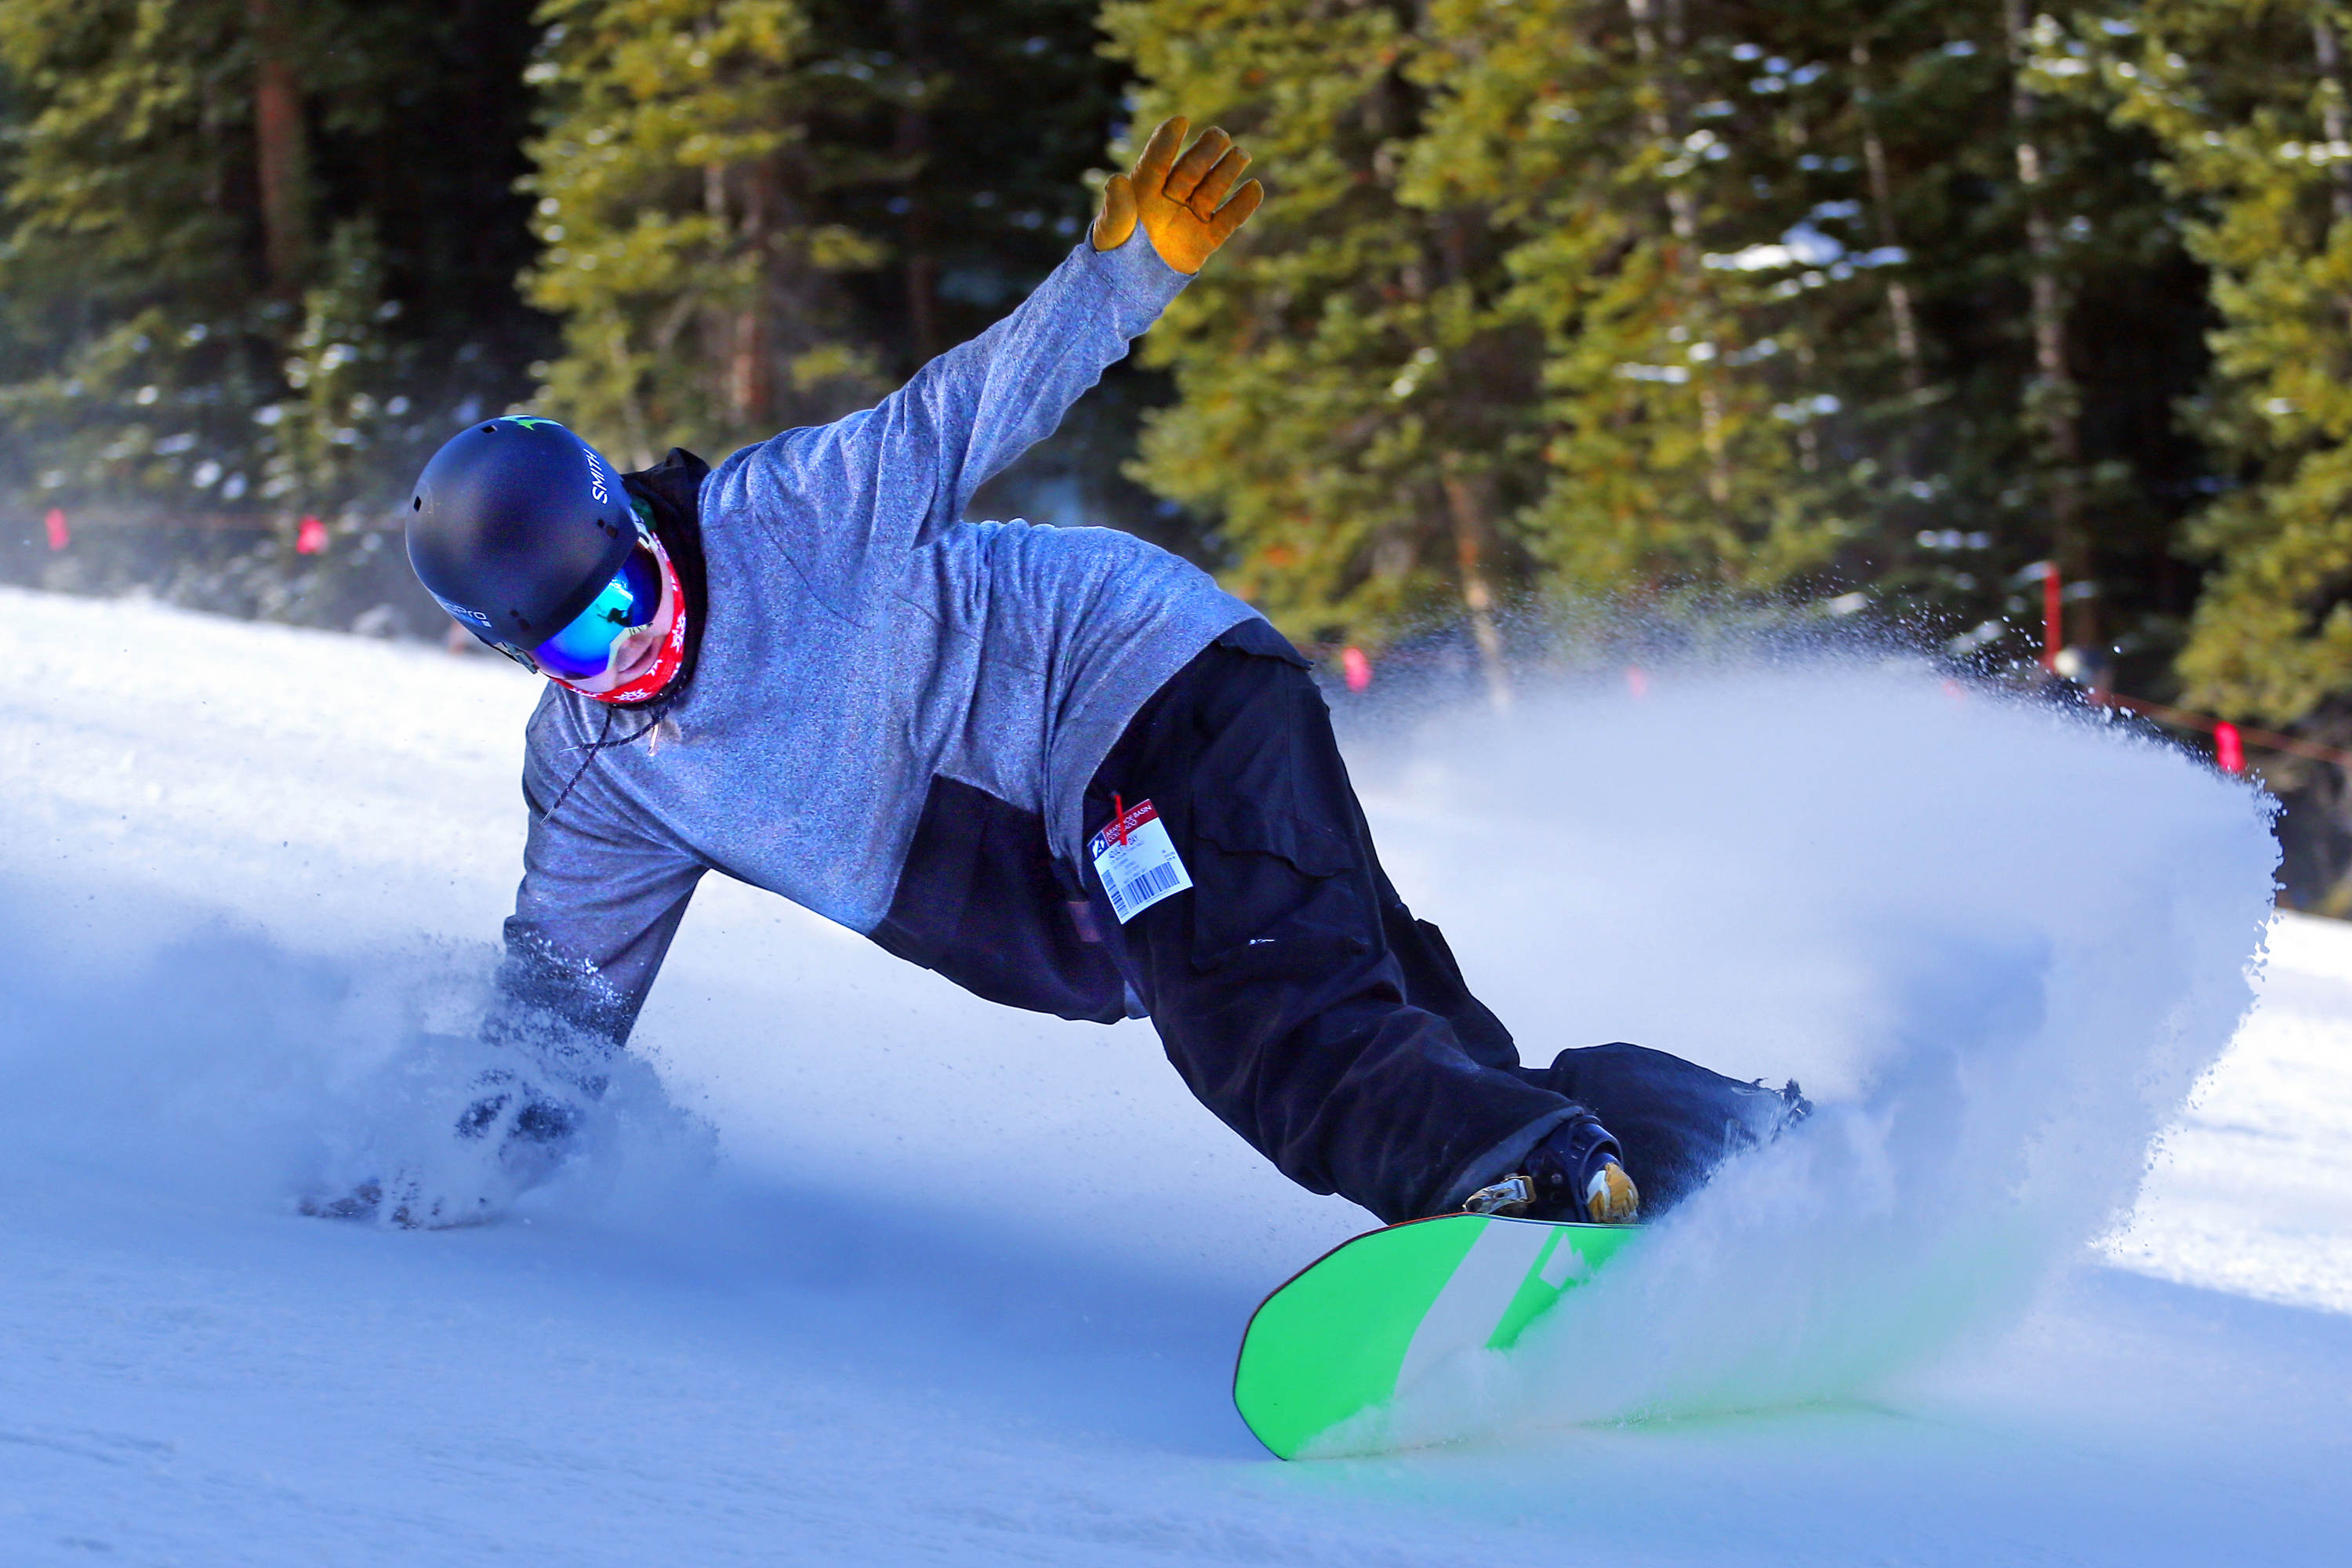 <p>A snowboarder carves a turn on opening day of ski season at Arapahoe Basin Ski Area Friday, Oct. 21, 2016, in Colorado. A-Basin was the first ski resort in North America to open for the season.</p>